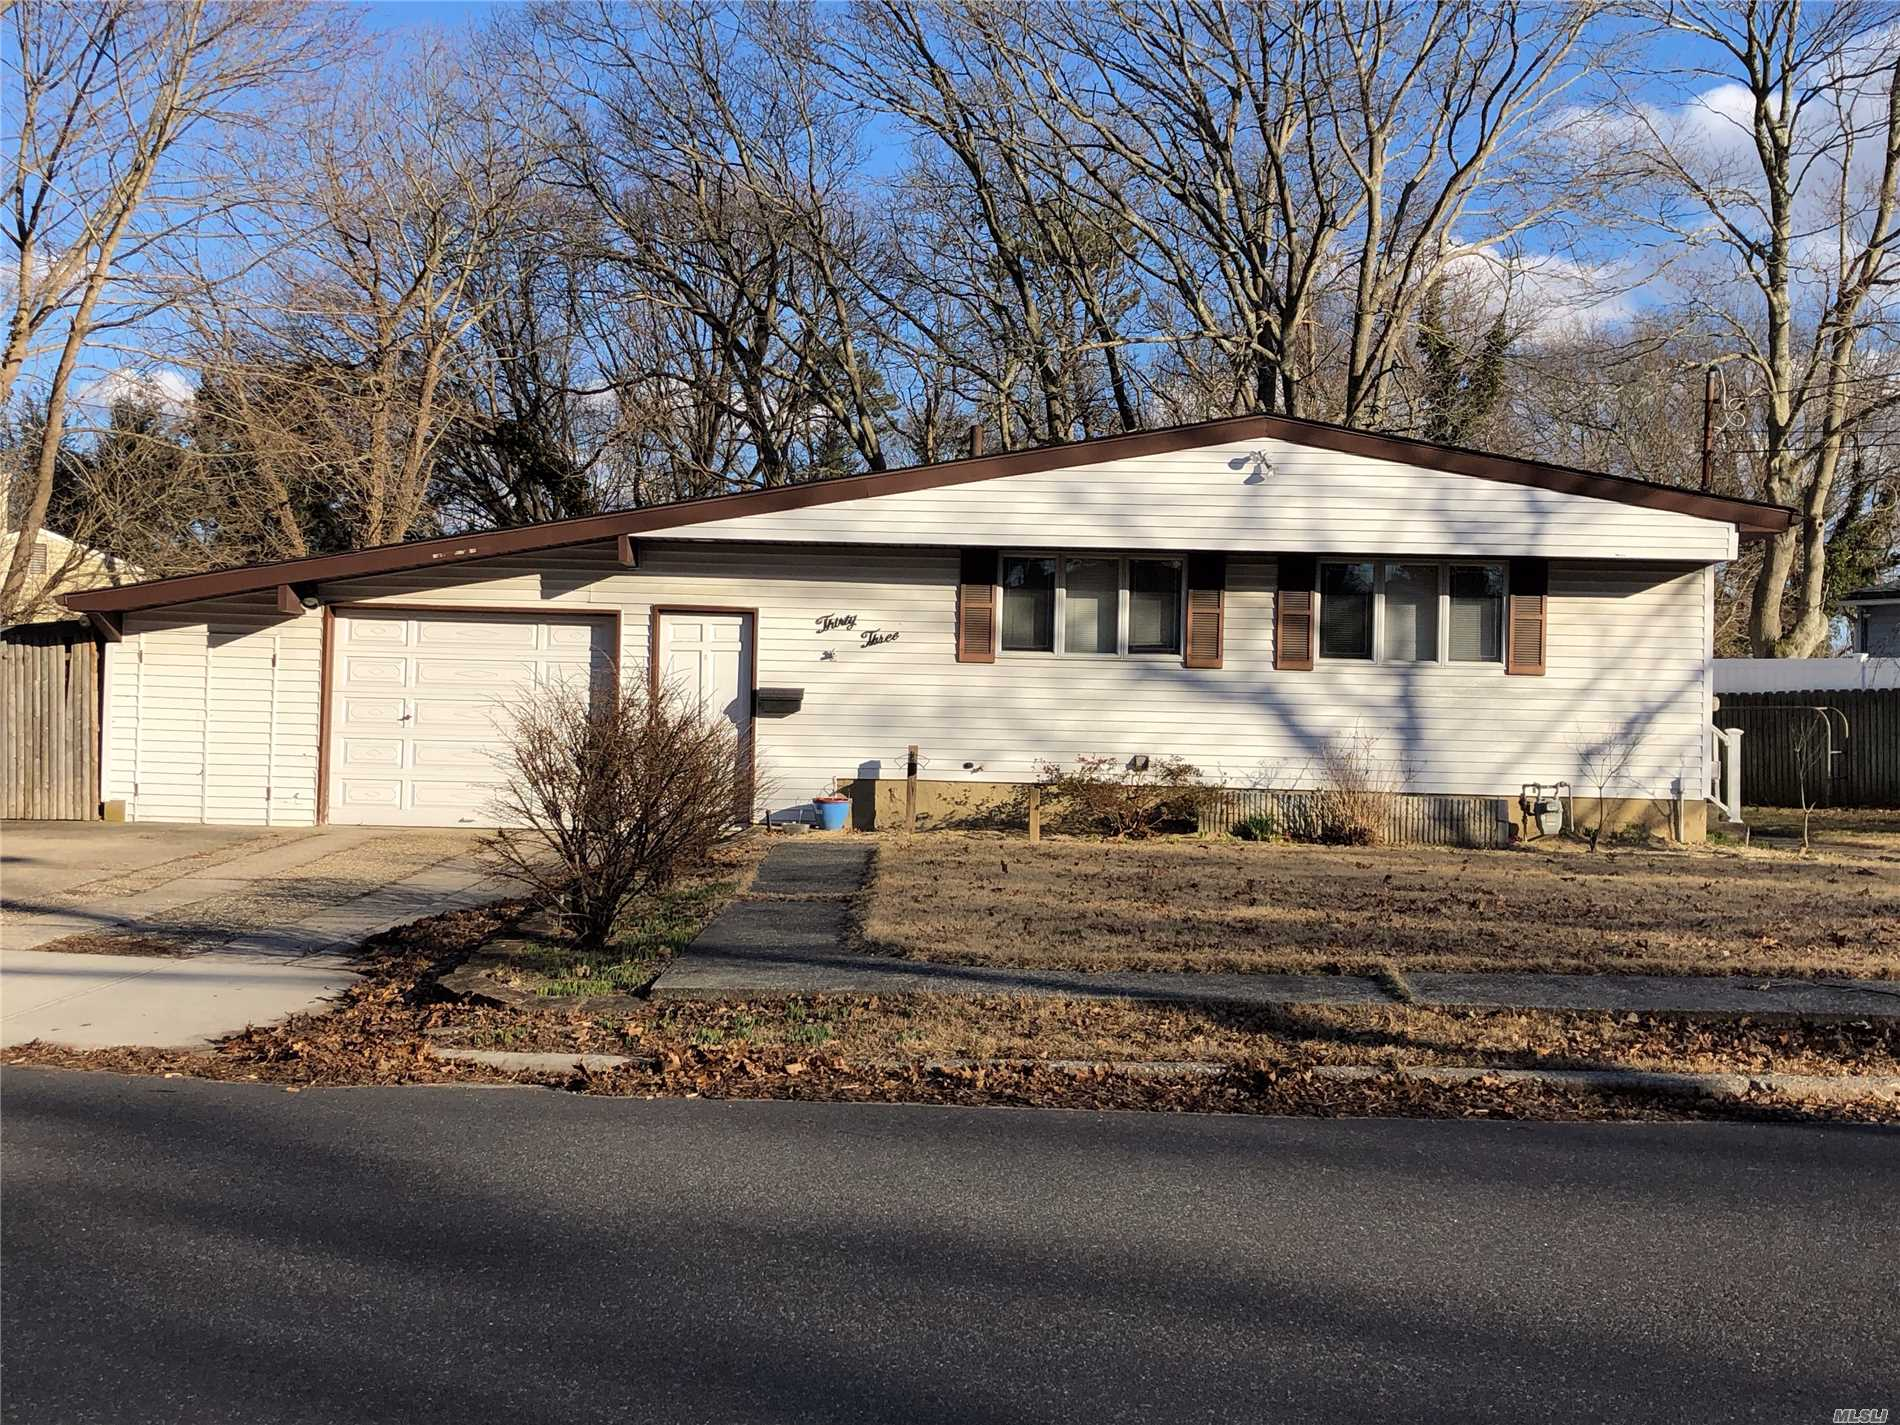 Whole house in sachem schools. full basement w/full bath, hook up for washer/dryer, nice neighborhood ** will consider small pet with extra Security***